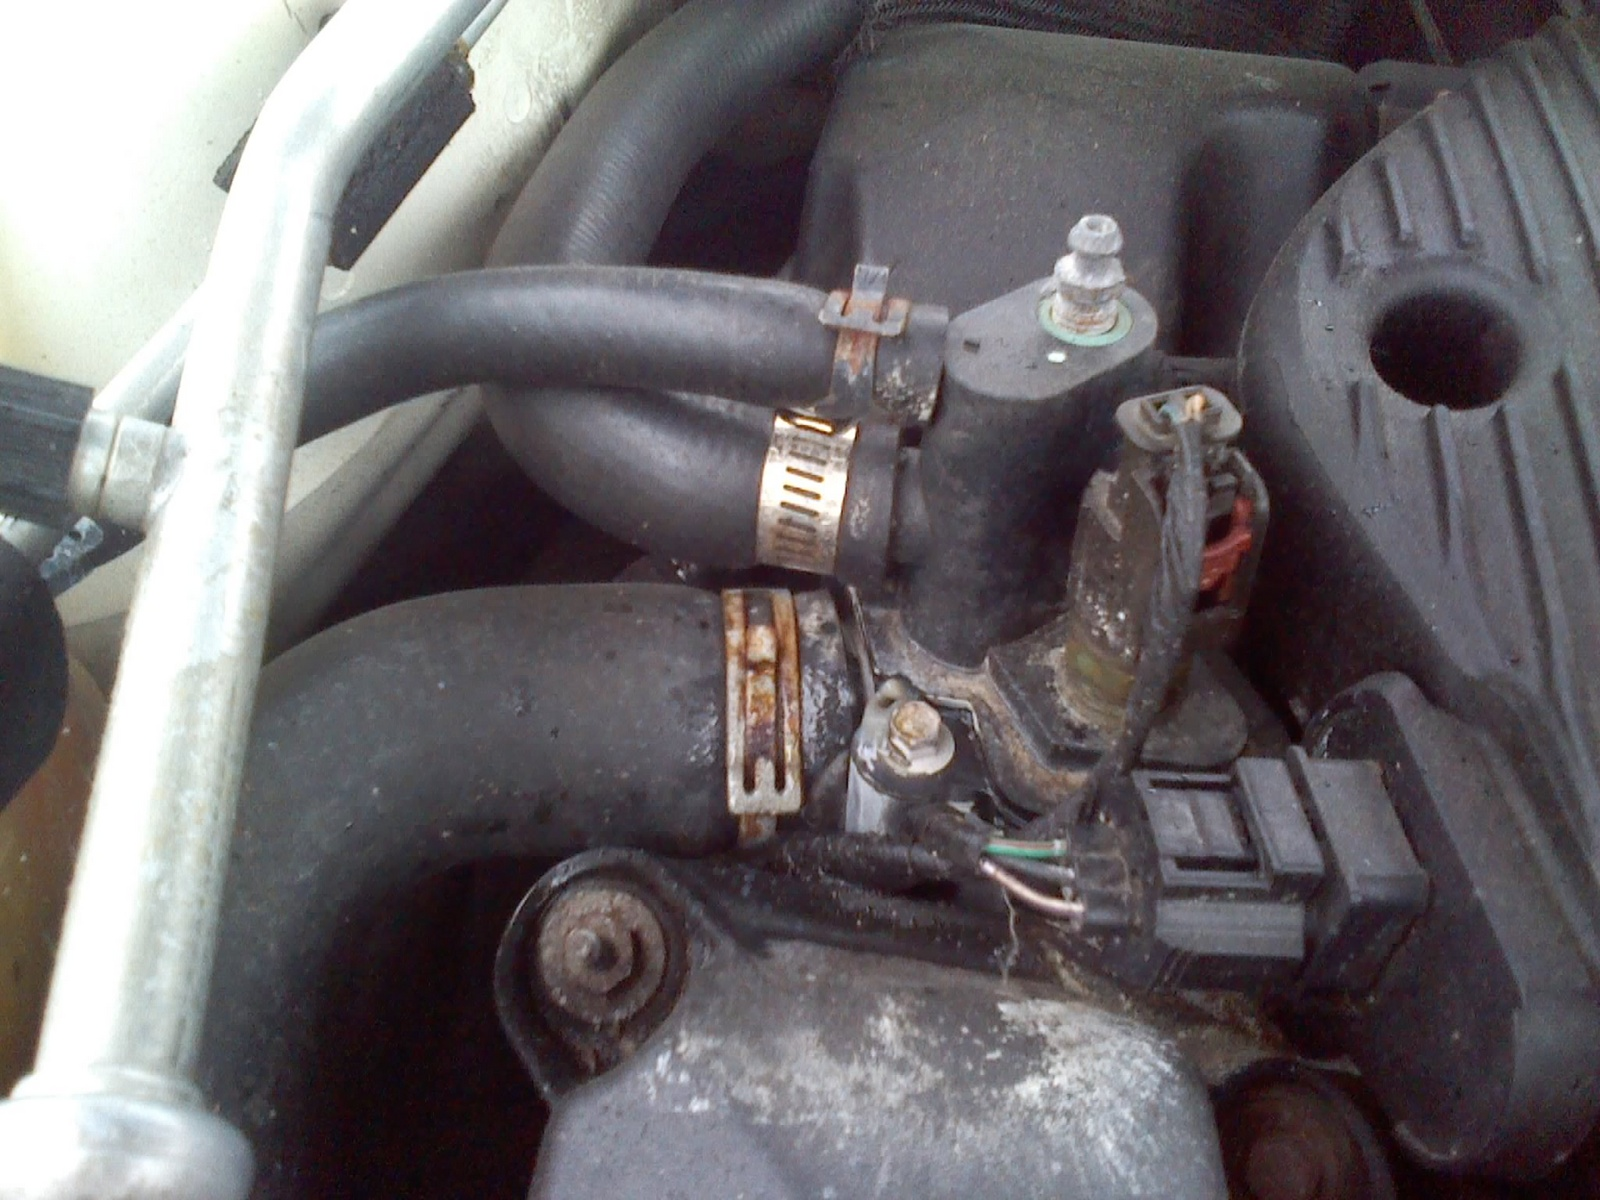 2000 ford focus thermostat diagram 1989 bass tracker pro 17 wiring heater core hose free